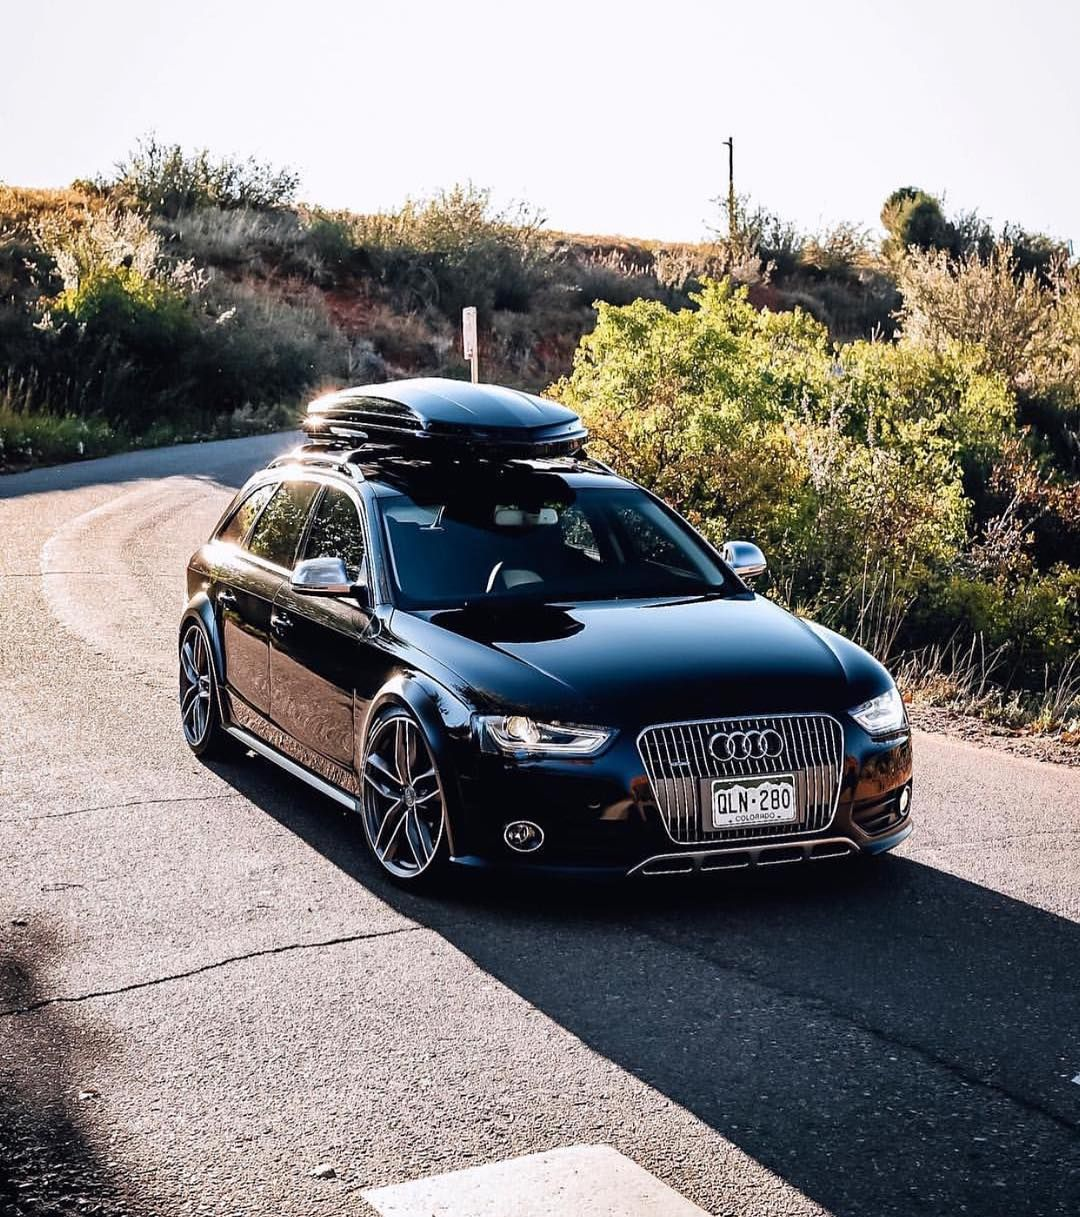 "Audi_Bahn on Instagram: ""One of the coolest Allroads out there!? What do you think �� . �-> @sfavant �-> @lowxjosh #audi #allroad #b8 #avant #audiallroad…"""